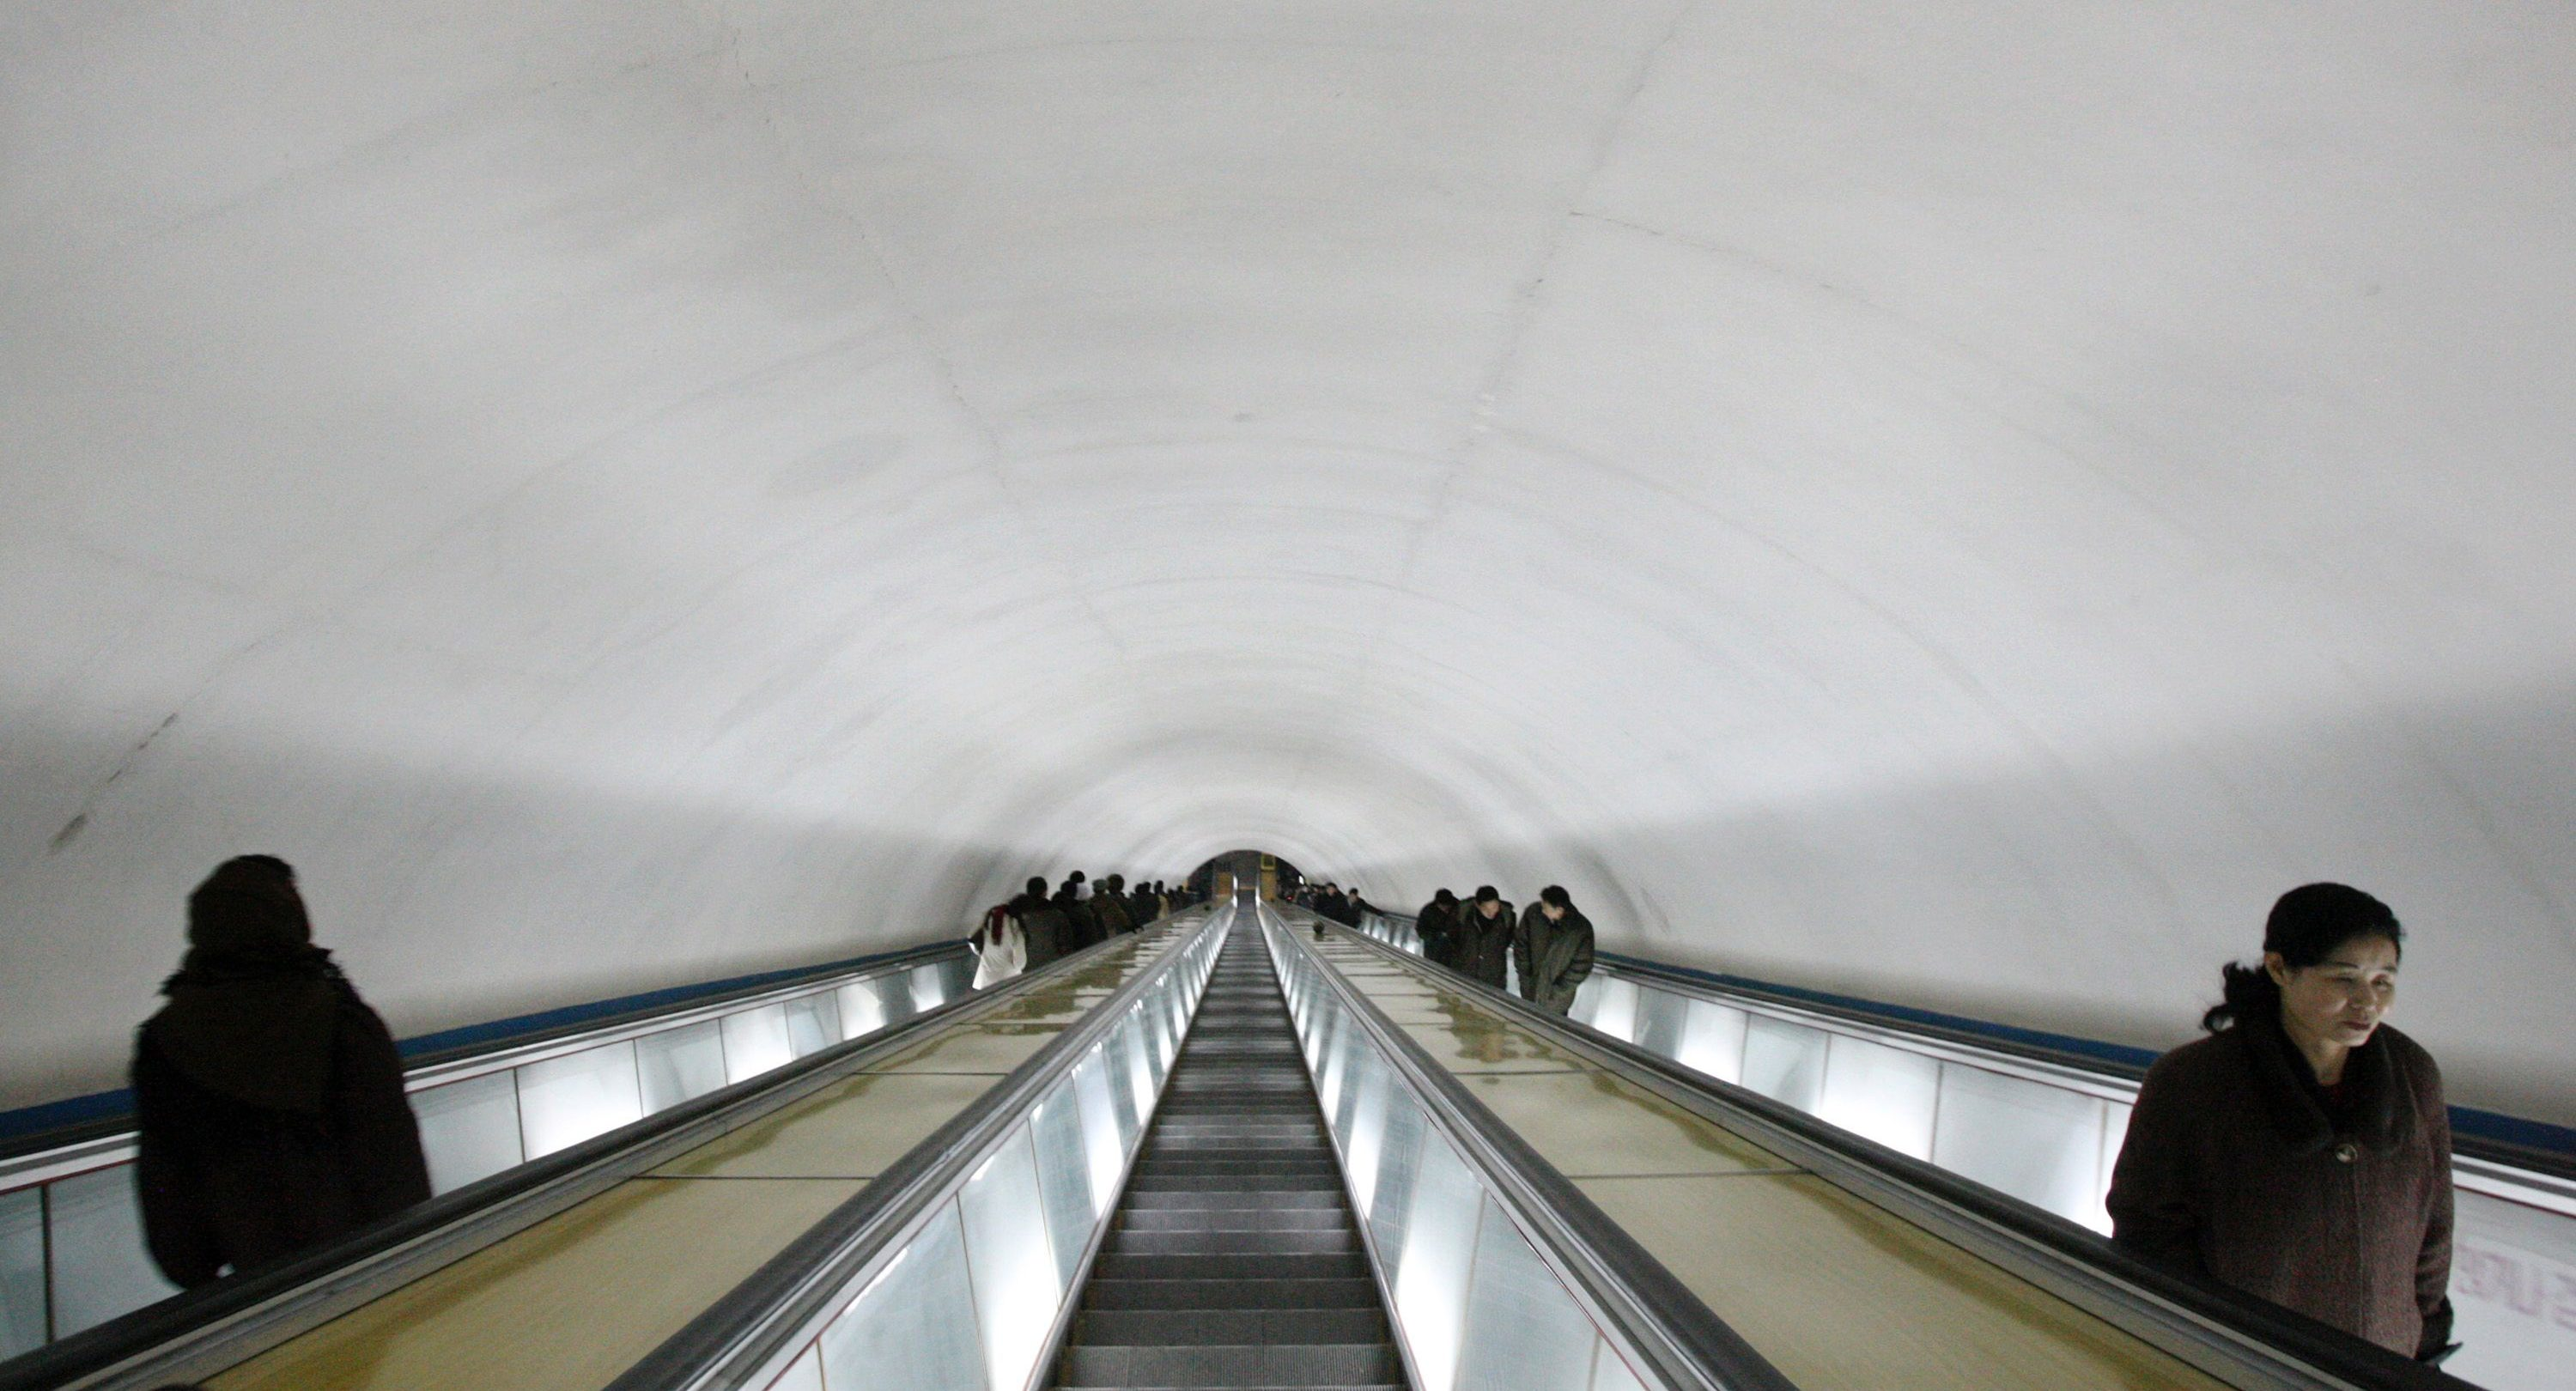 North Korean commuters ride up and down a deep tunnel into a subway station in Pyongyang, North Korea in this Tuesday, Feb. 26, 2008 photo.